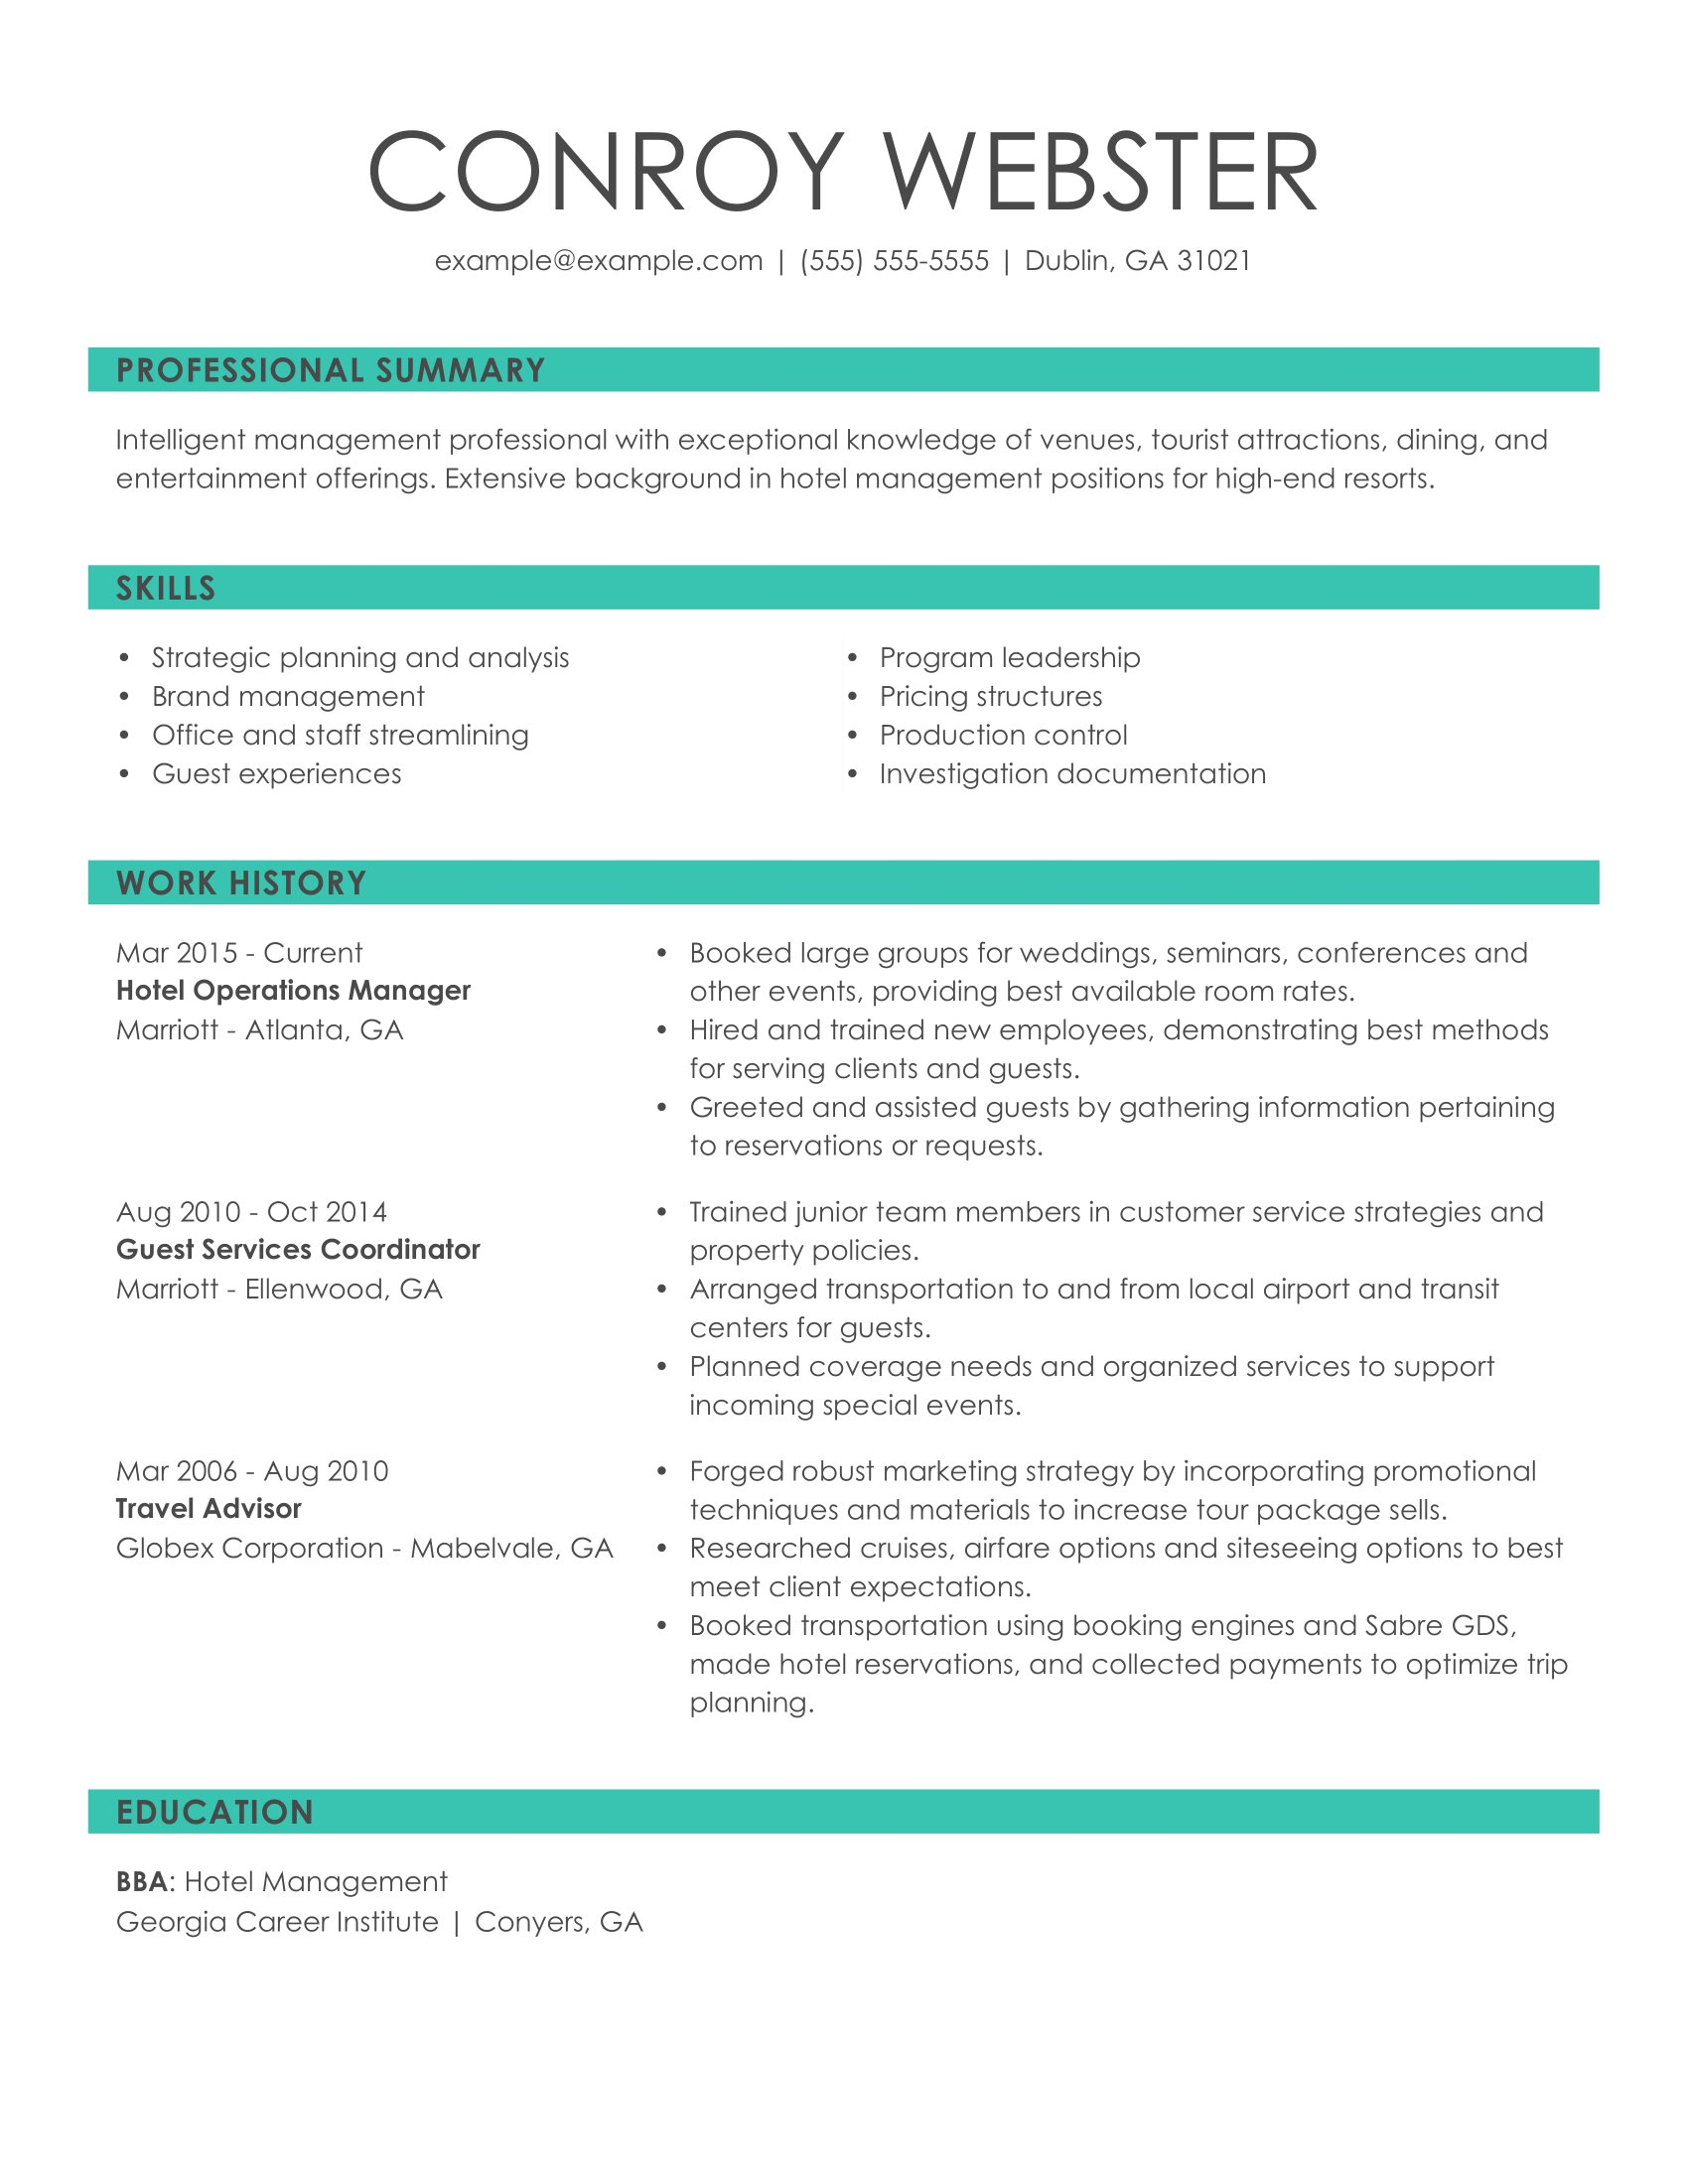 see our top customer service resume example short summary for hotel ops manager pcu nurse Resume Short Summary For Resume